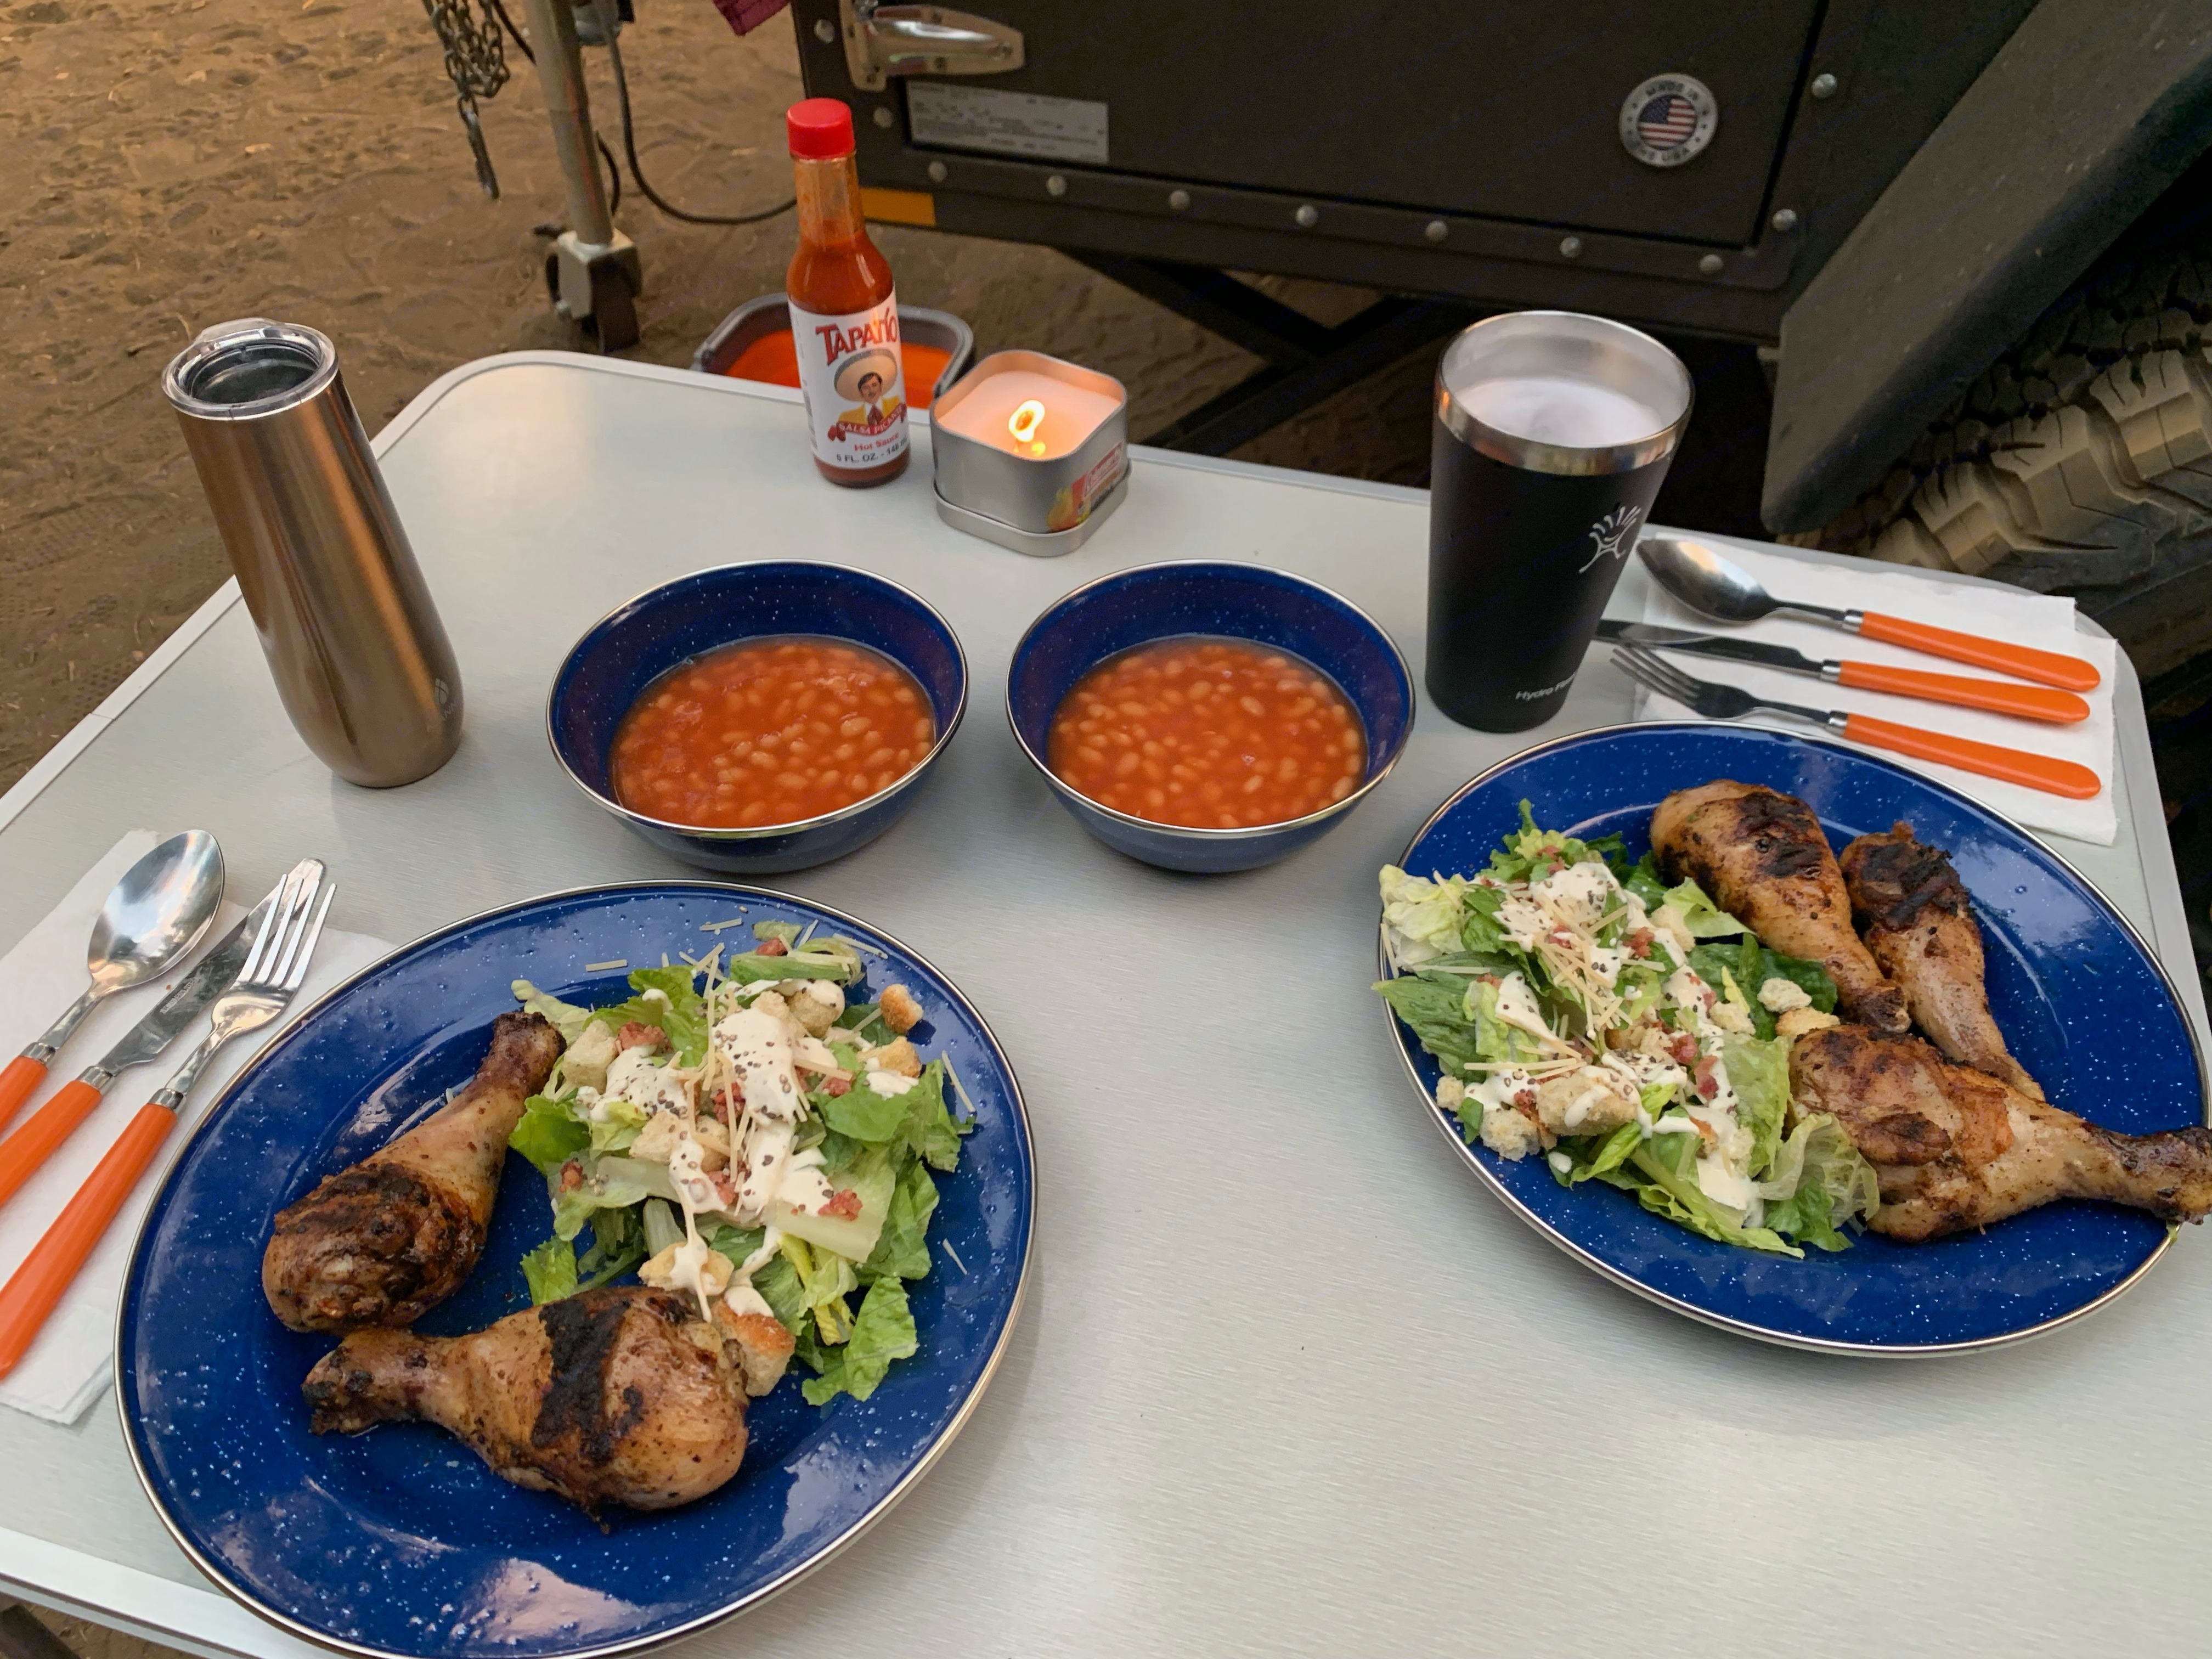 Dishes, cooking equipment and stove included.  Just bring food and drinks!. Free Spirit High Country 80 in 2019